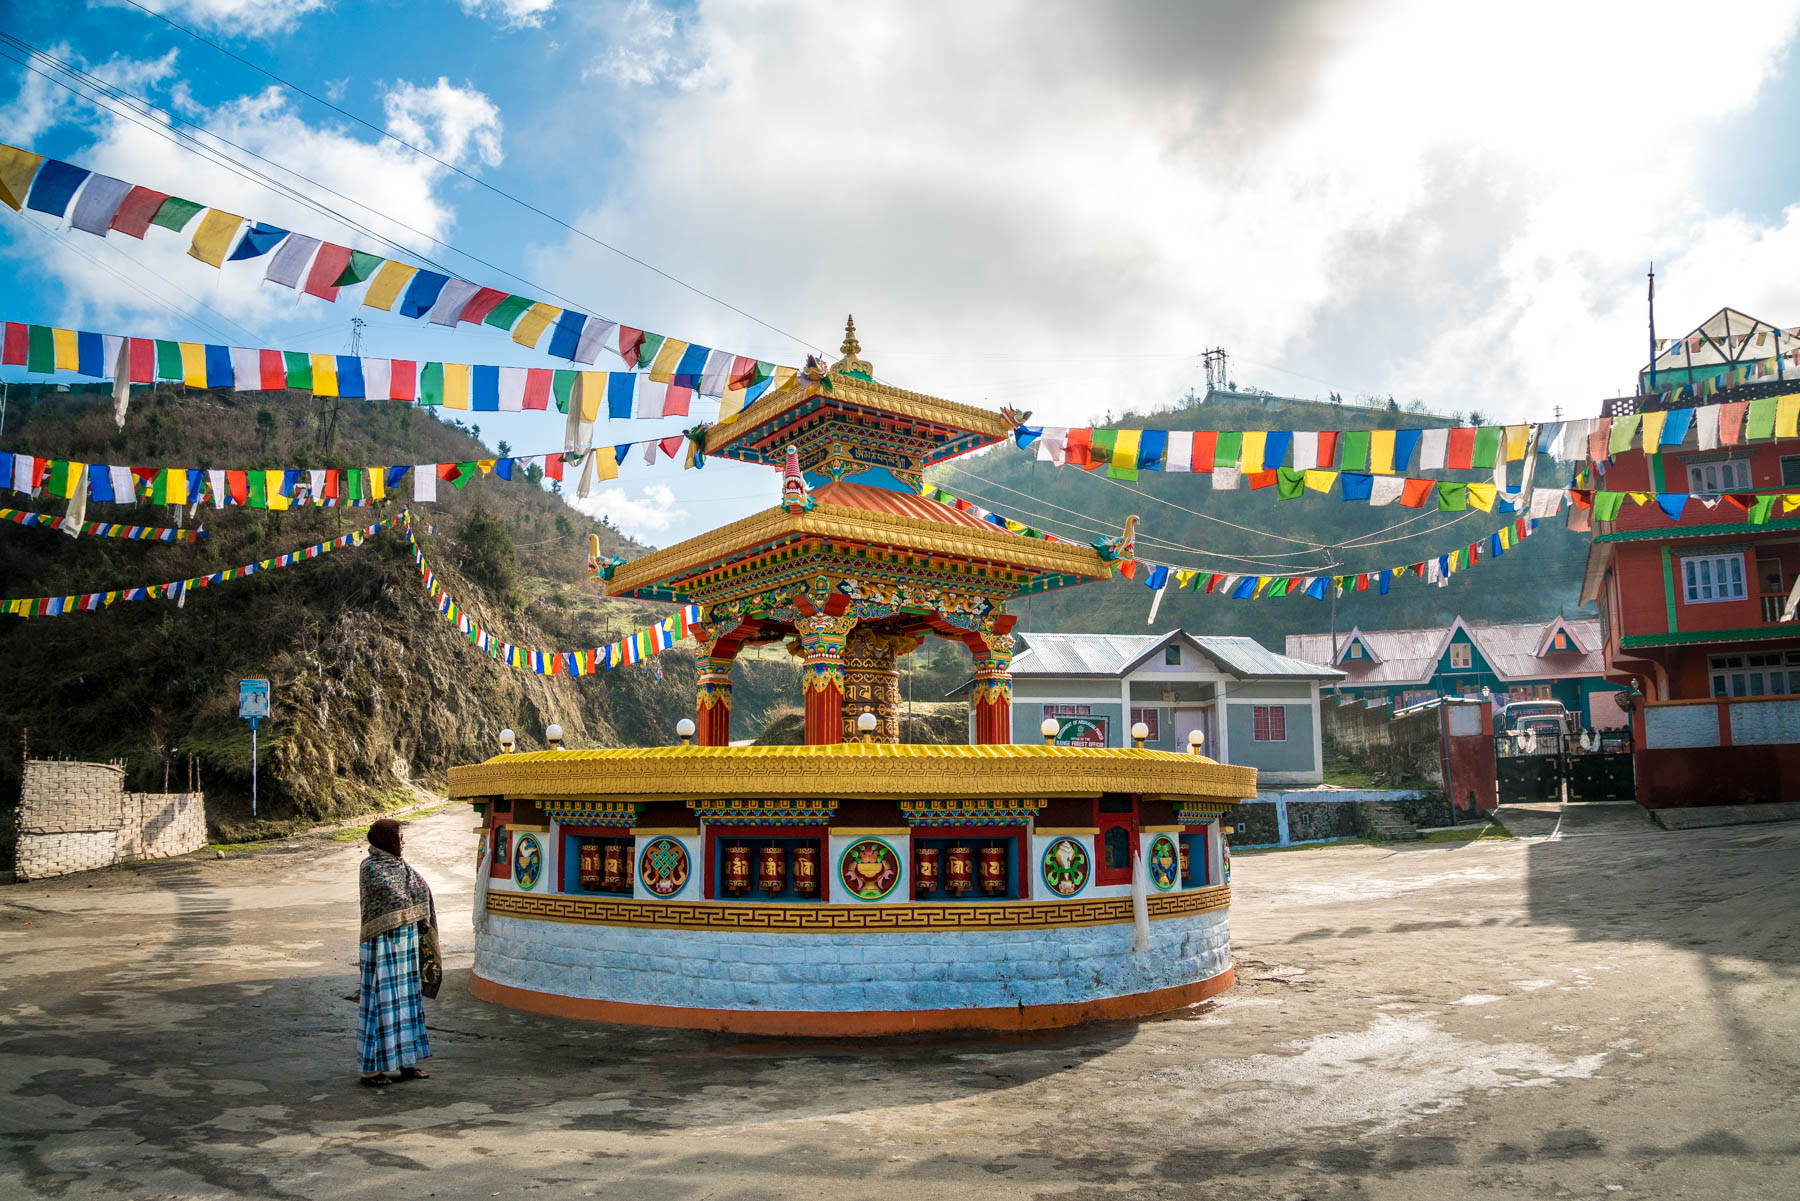 Backpacking Arunachal Pradesh travel guide - A Buddhist tibetan prayer wheel in Tawang - Lost With Purpose